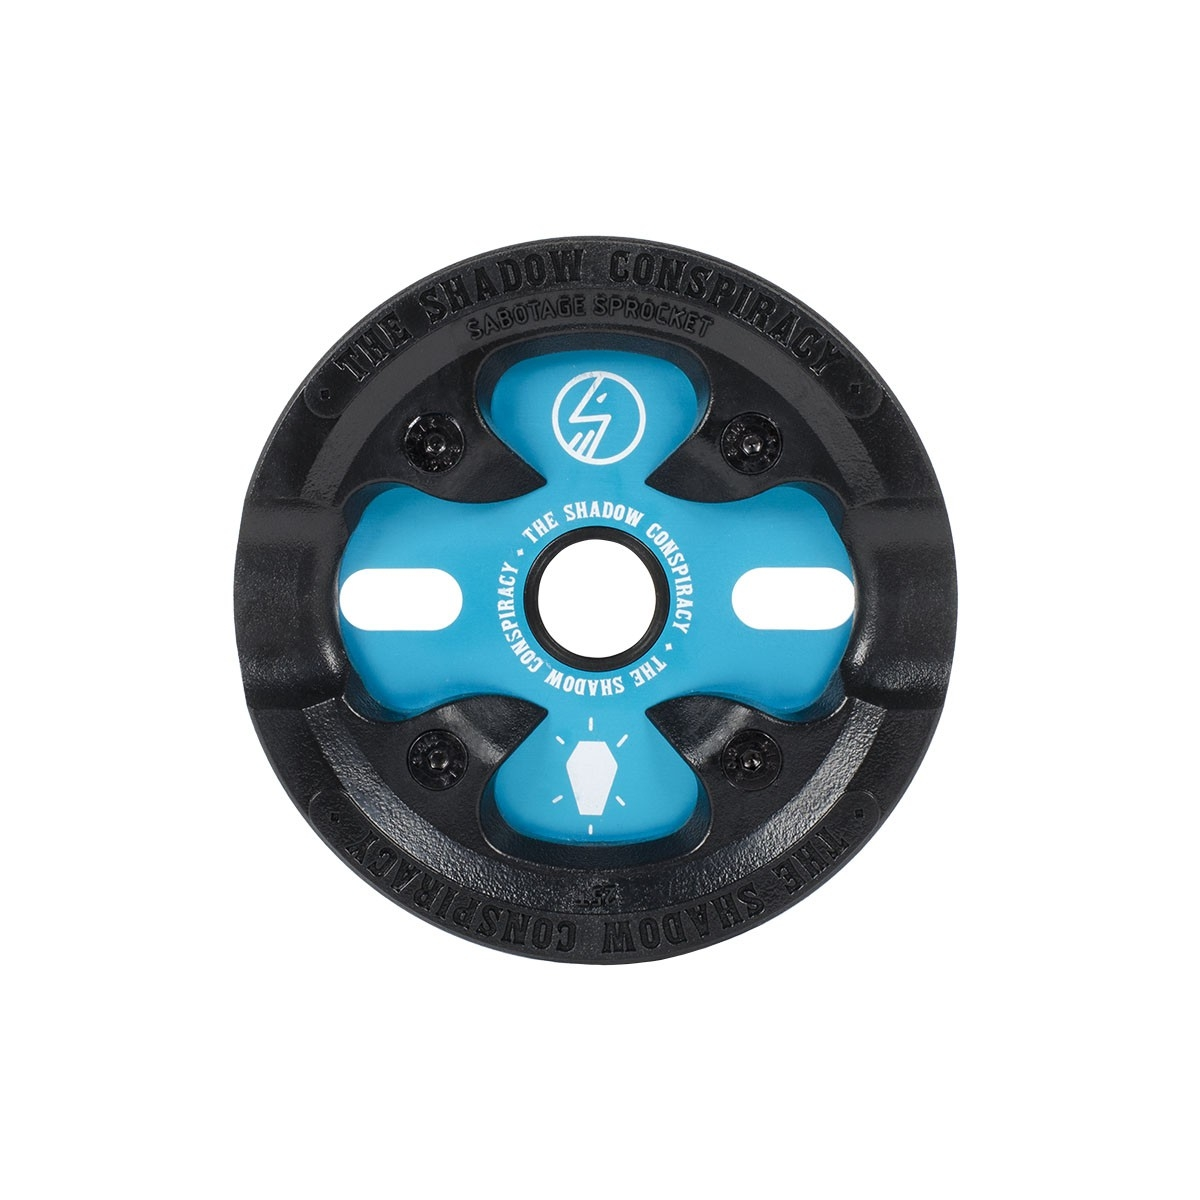 Couronne BMX TSC Sabotage Sprocket 25 dts Bleu Polar Pop